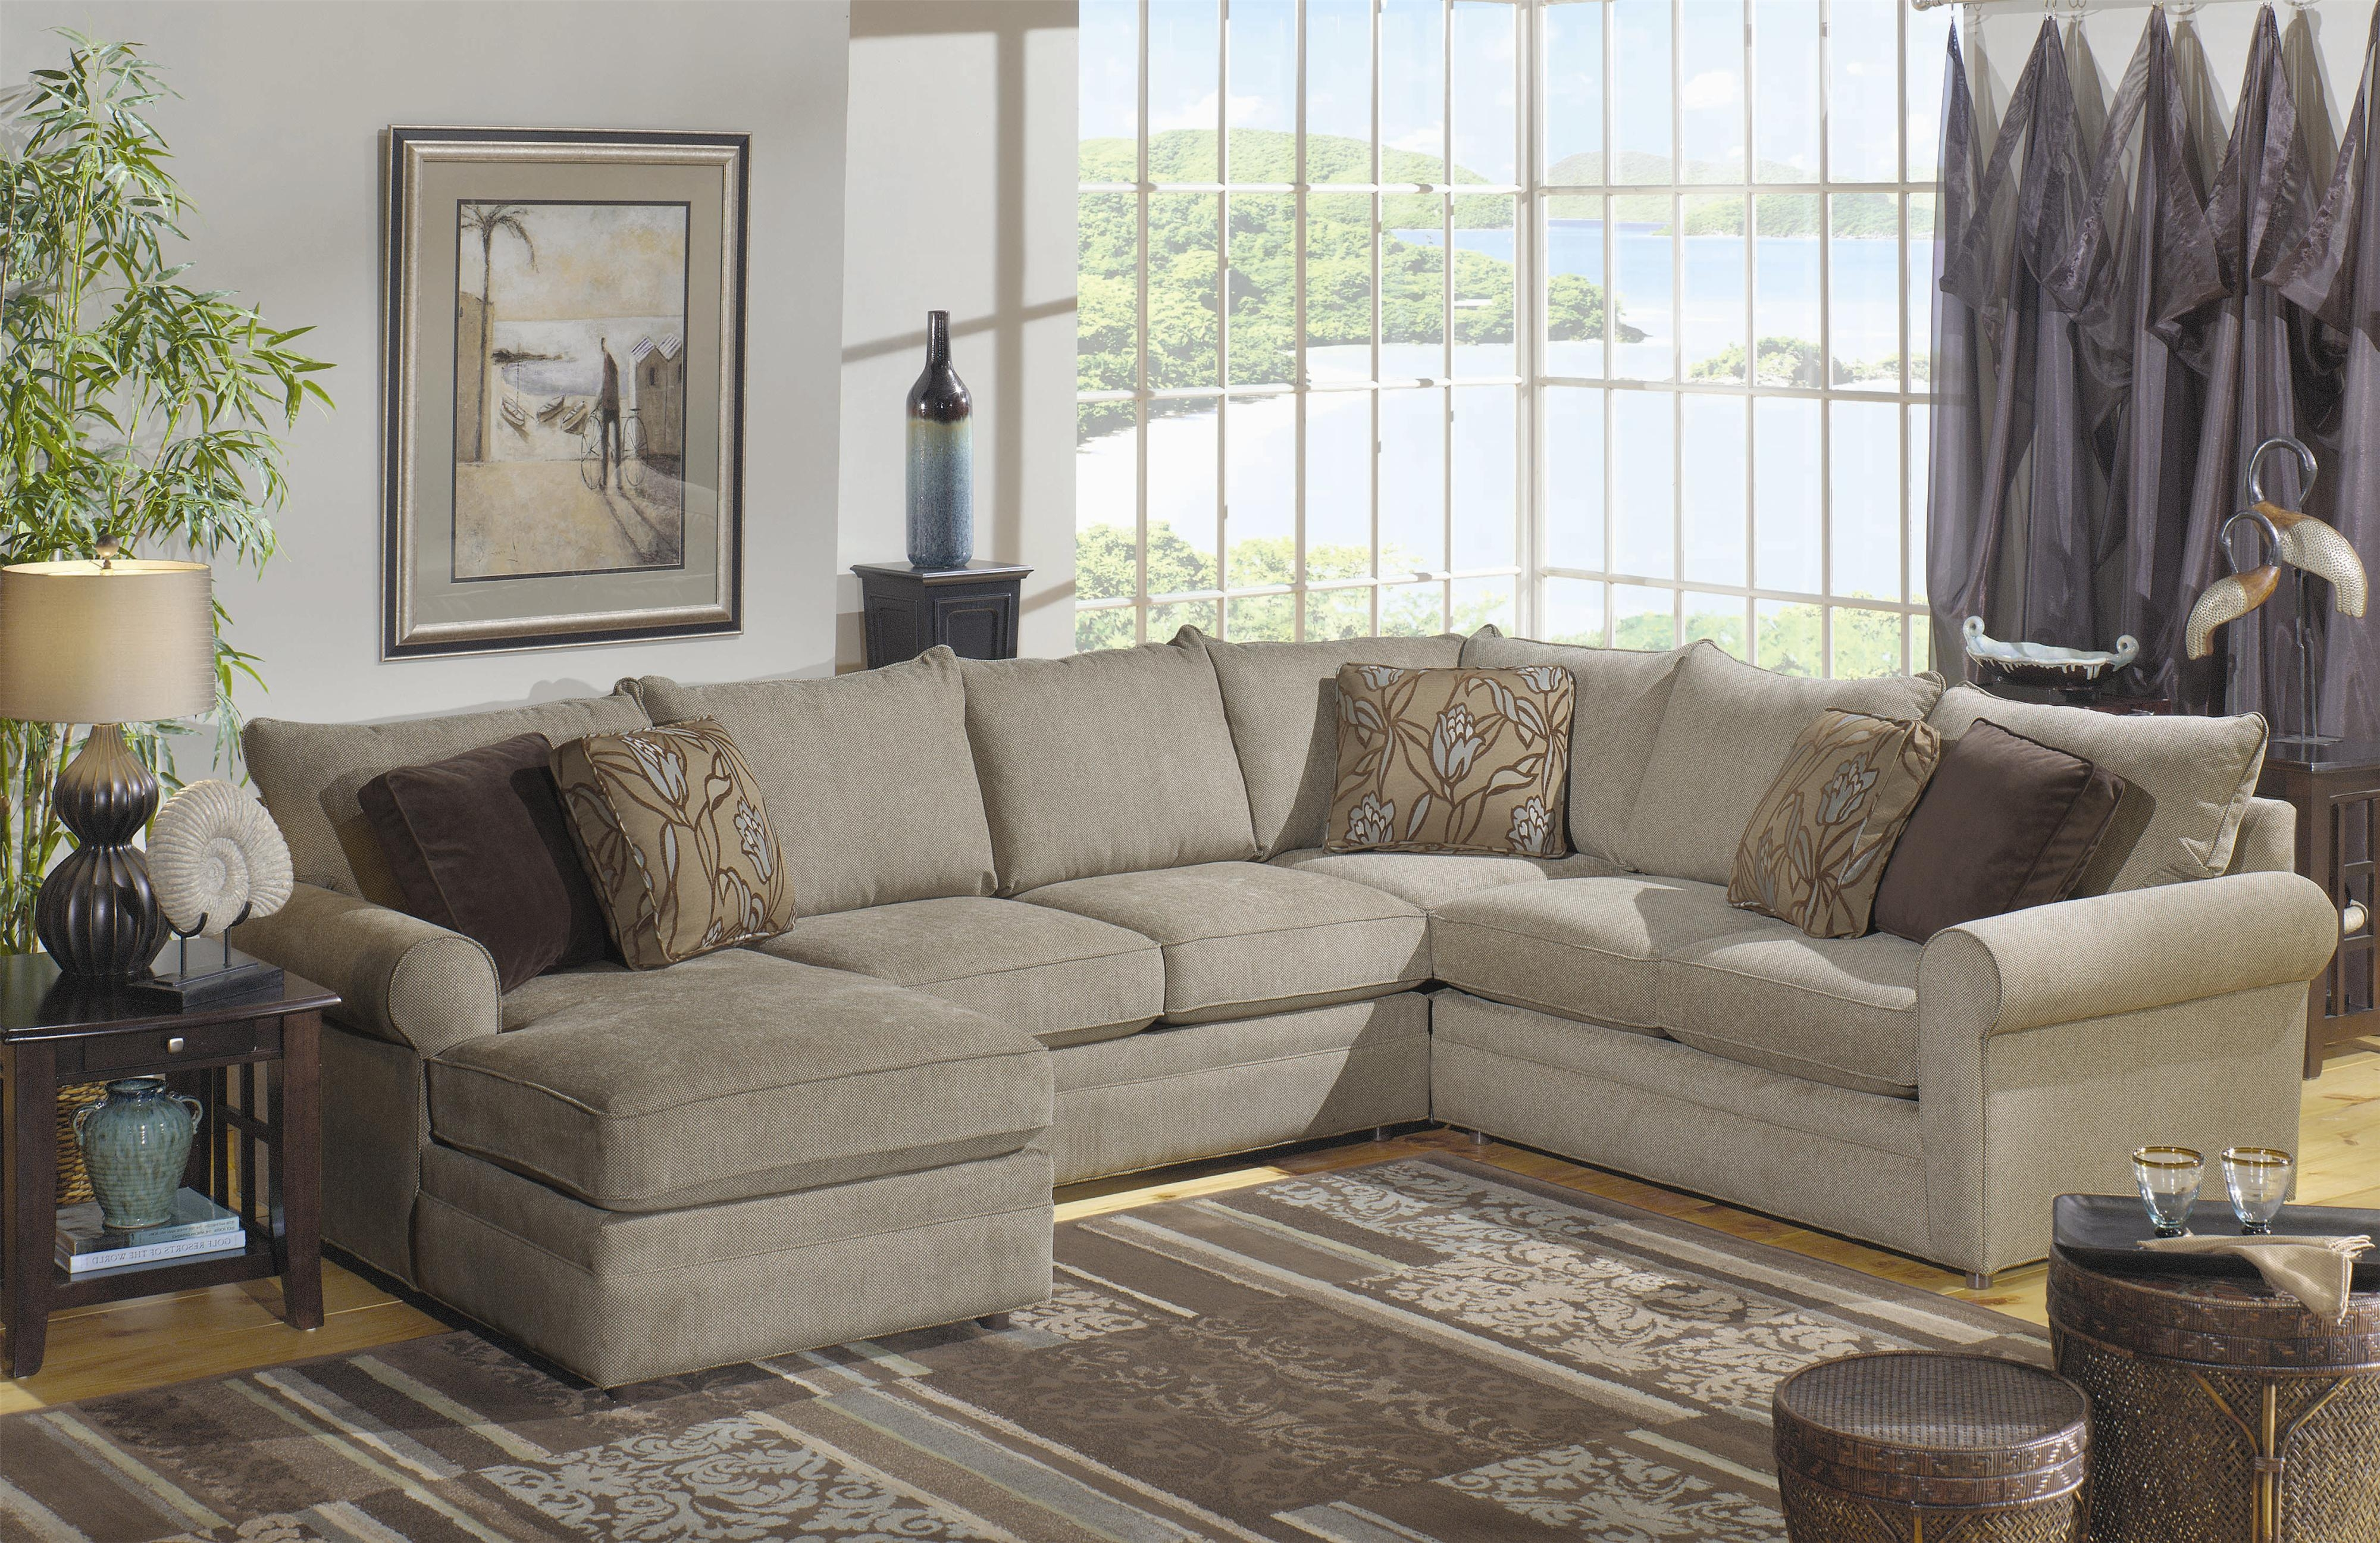 7748 Sectional Sofa Craftmaster We Can Help You Pick Your With Regard To Craftmaster Sectional Sofa (Image 1 of 15)